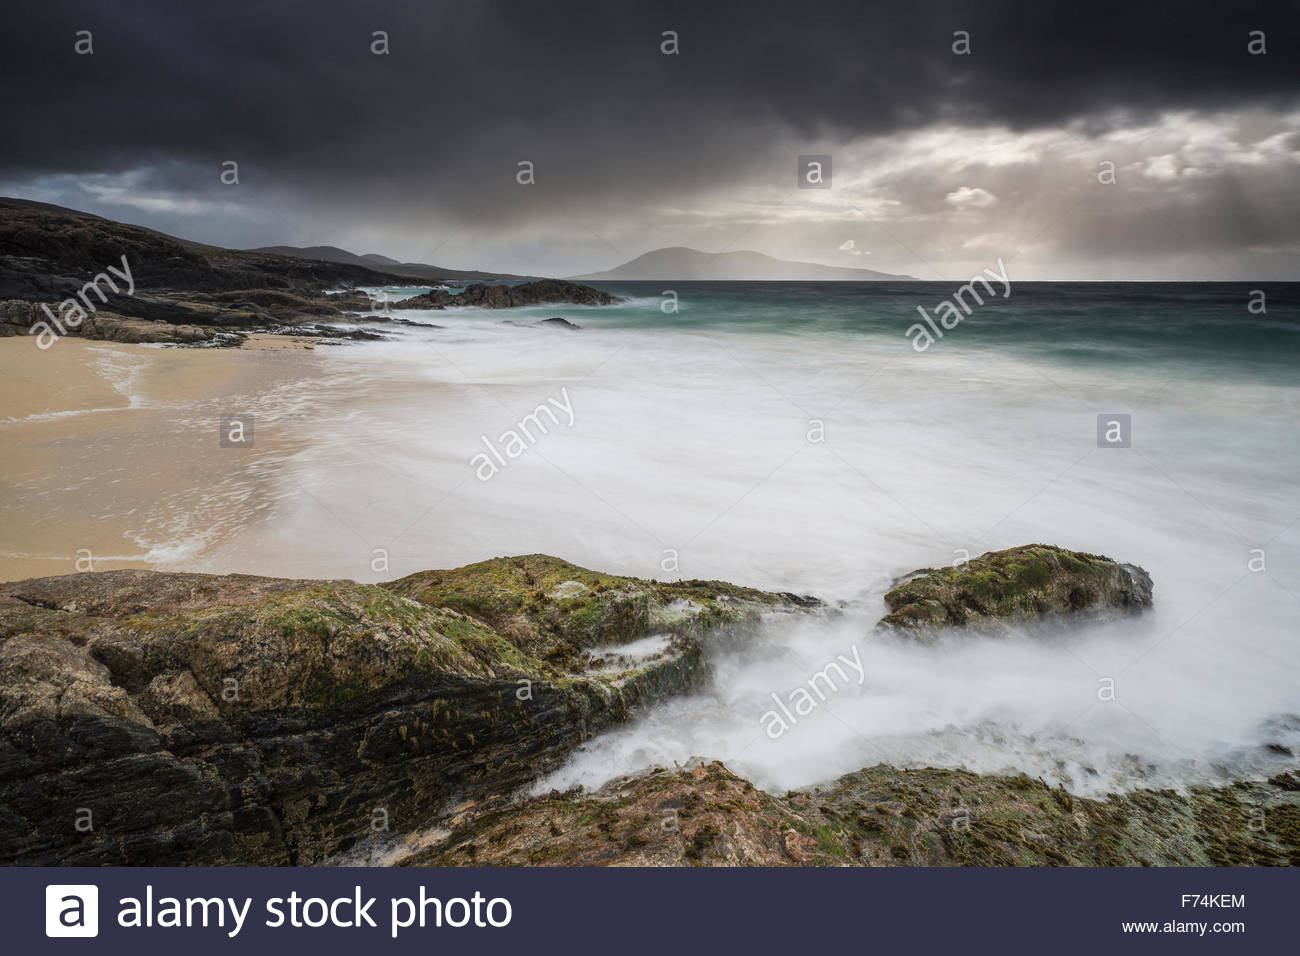 The ebb and flow of the tide at Borve Mor, Isle of Harris, Outer Hebrides, Scotland - Stock Image